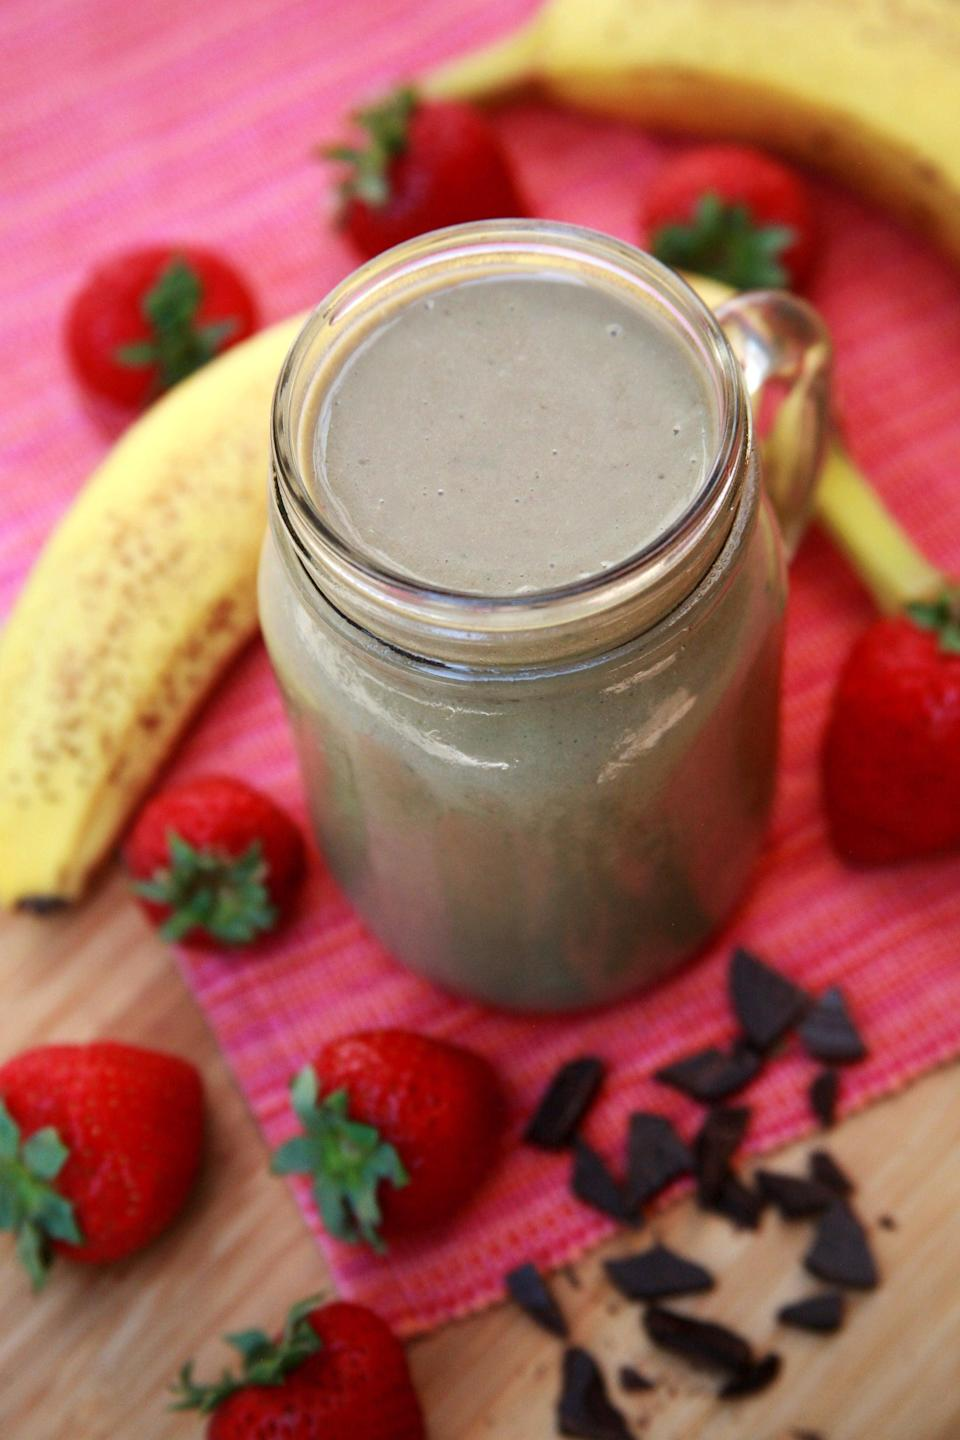 """<p>This classic smoothie made with bananas, strawberries, spinach, peanut butter, chocolate soy milk, and soy yogurt offers almost 15 grams of protein. </p> <p><strong>Get the recipe:</strong> <a href=""""https://www.popsugar.com/fitness/Recipe-Chocolate-Strawberry-Banana-Smoothie-7166332"""" class=""""link rapid-noclick-resp"""" rel=""""nofollow noopener"""" target=""""_blank"""" data-ylk=""""slk:chocolate strawberry banana smoothie"""">chocolate strawberry banana smoothie</a></p>"""